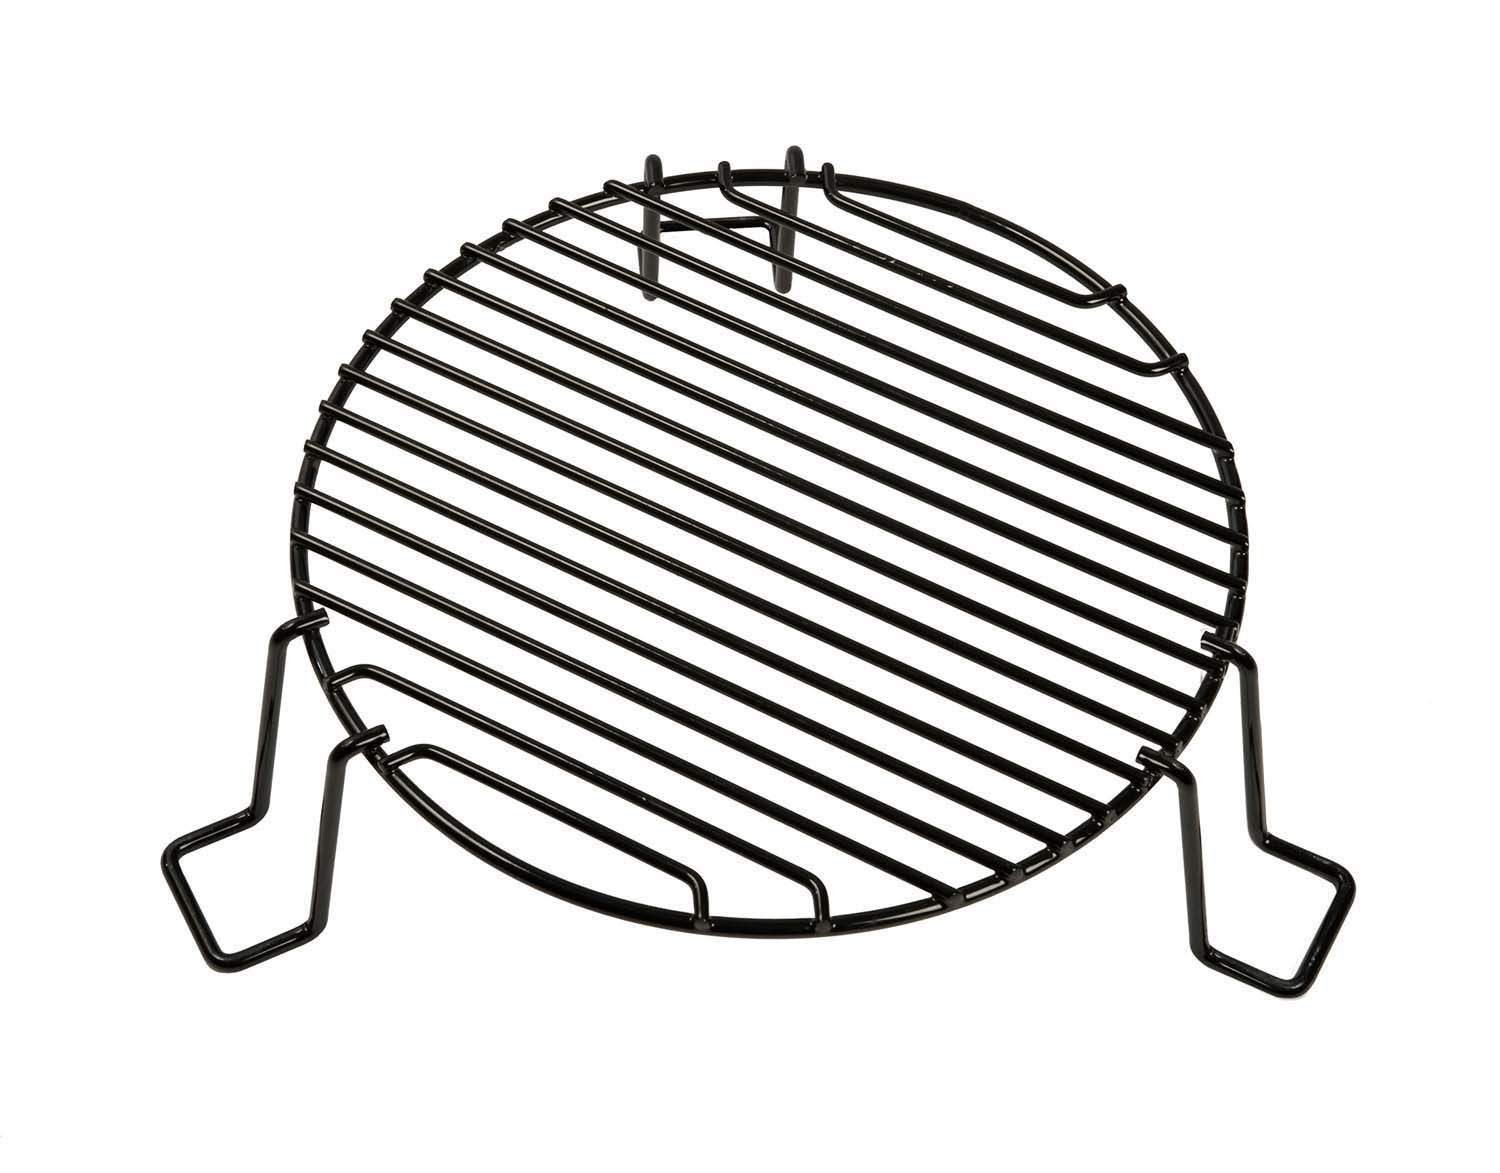 Primo Grill 330 2-in-1 Kamado Warmer Rack by Primo Grill